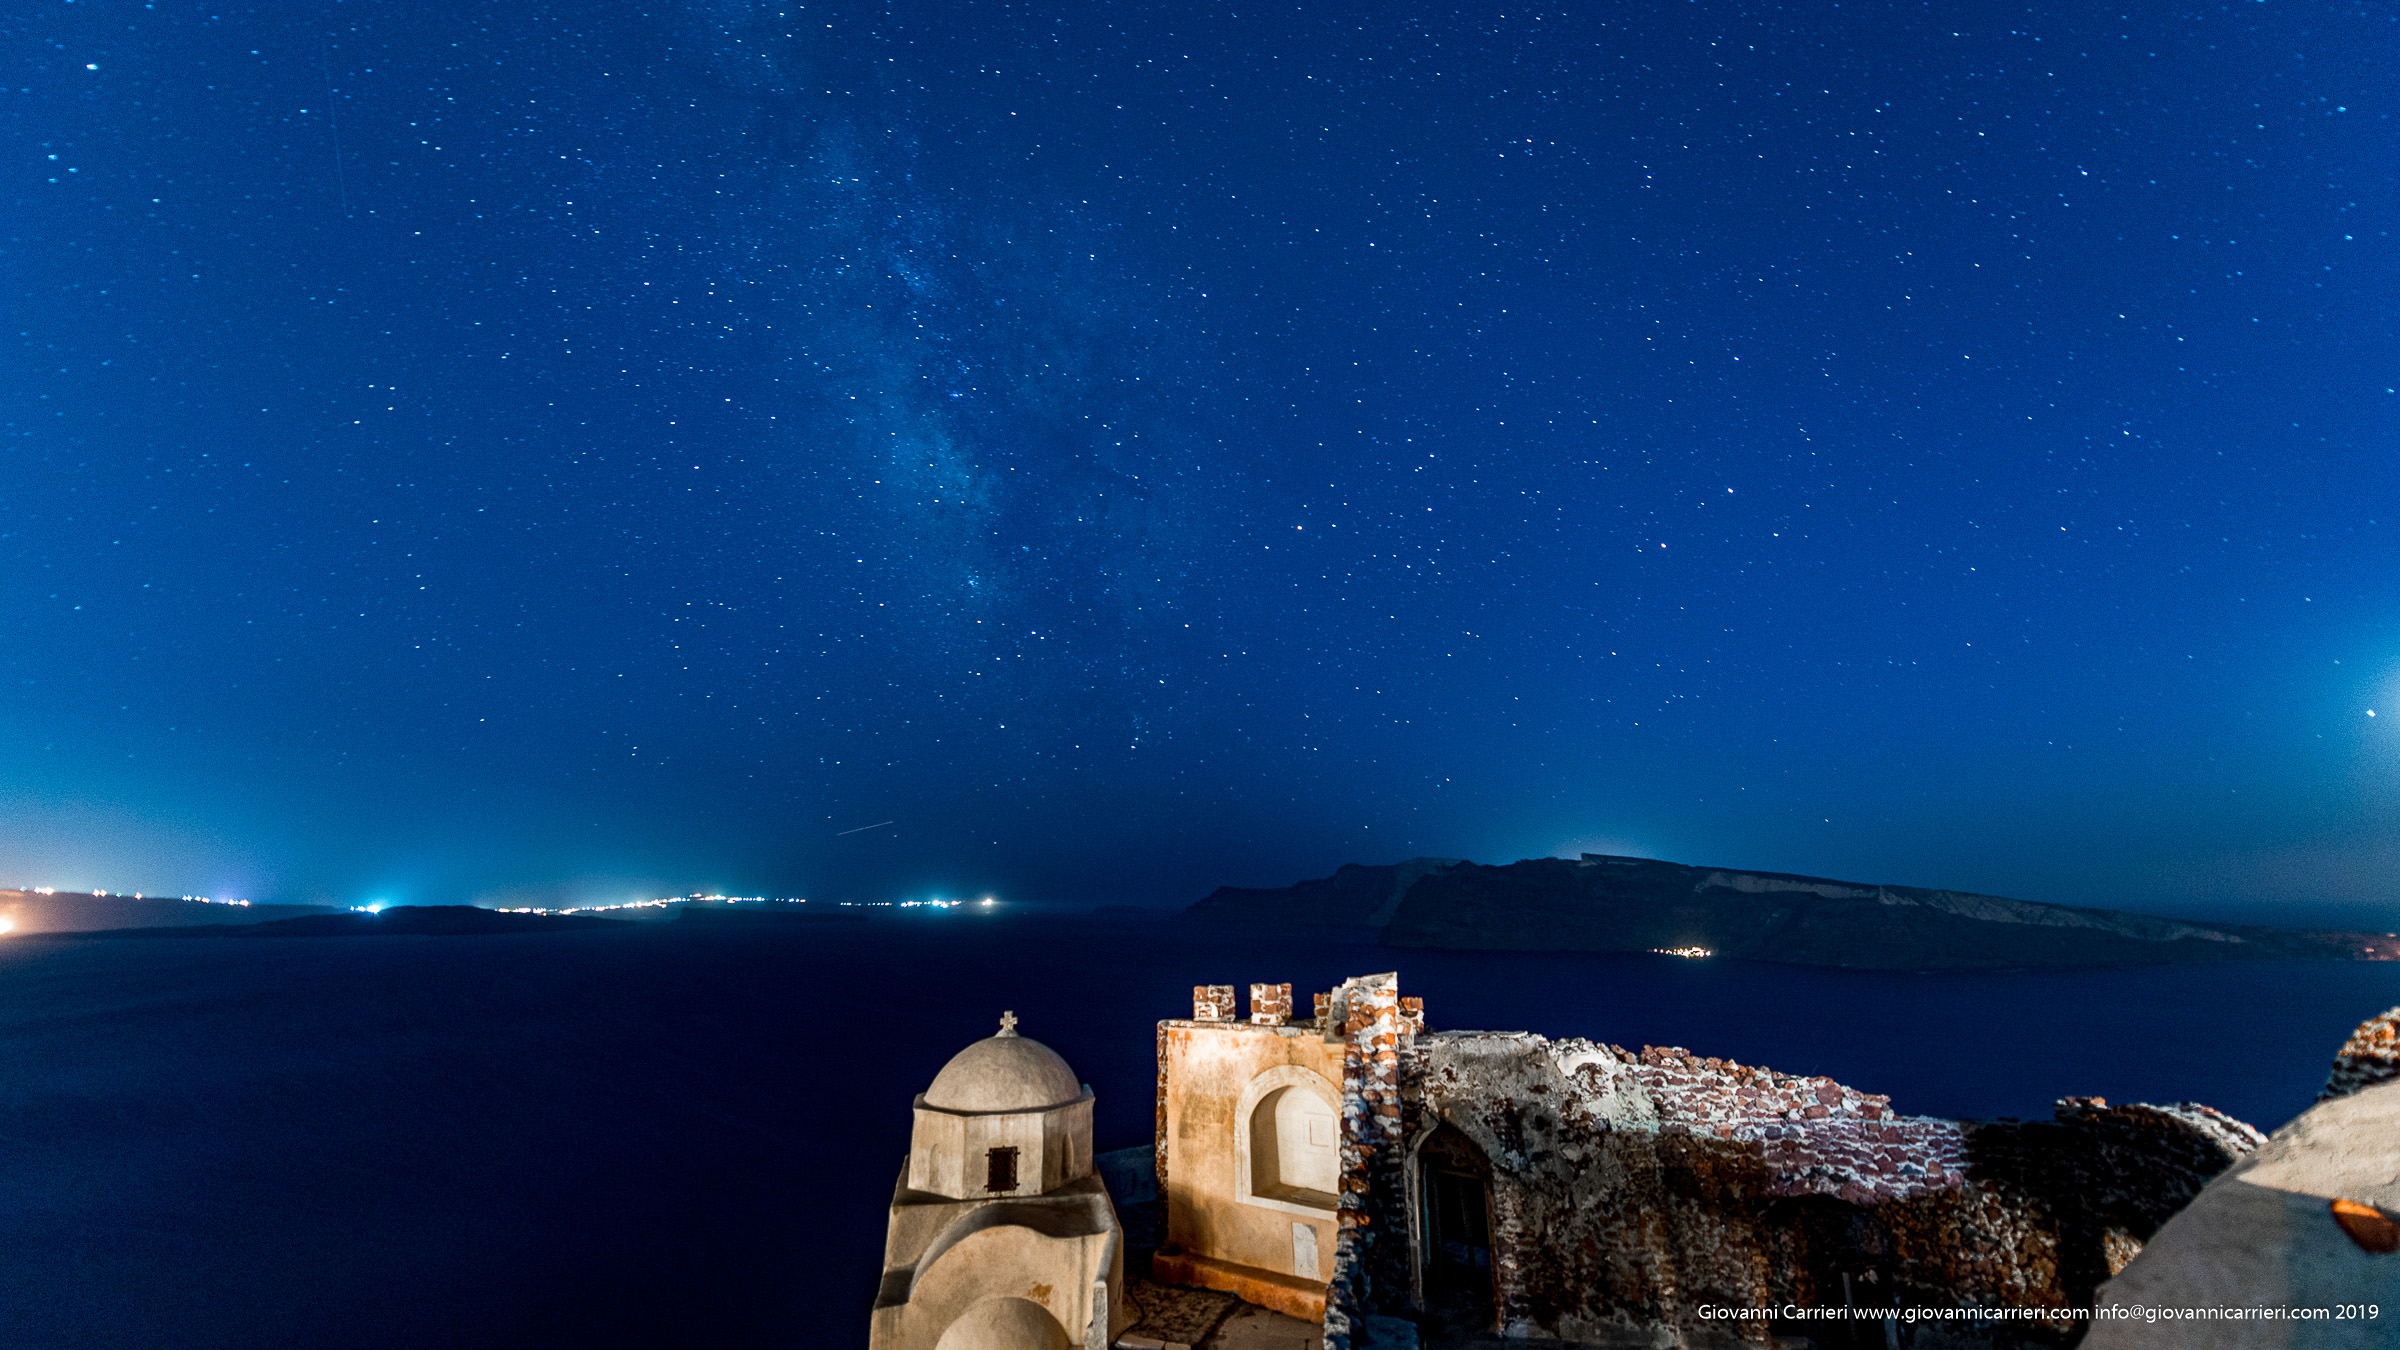 The night sky over the caldera of Santorini seen from the fortress of Oia